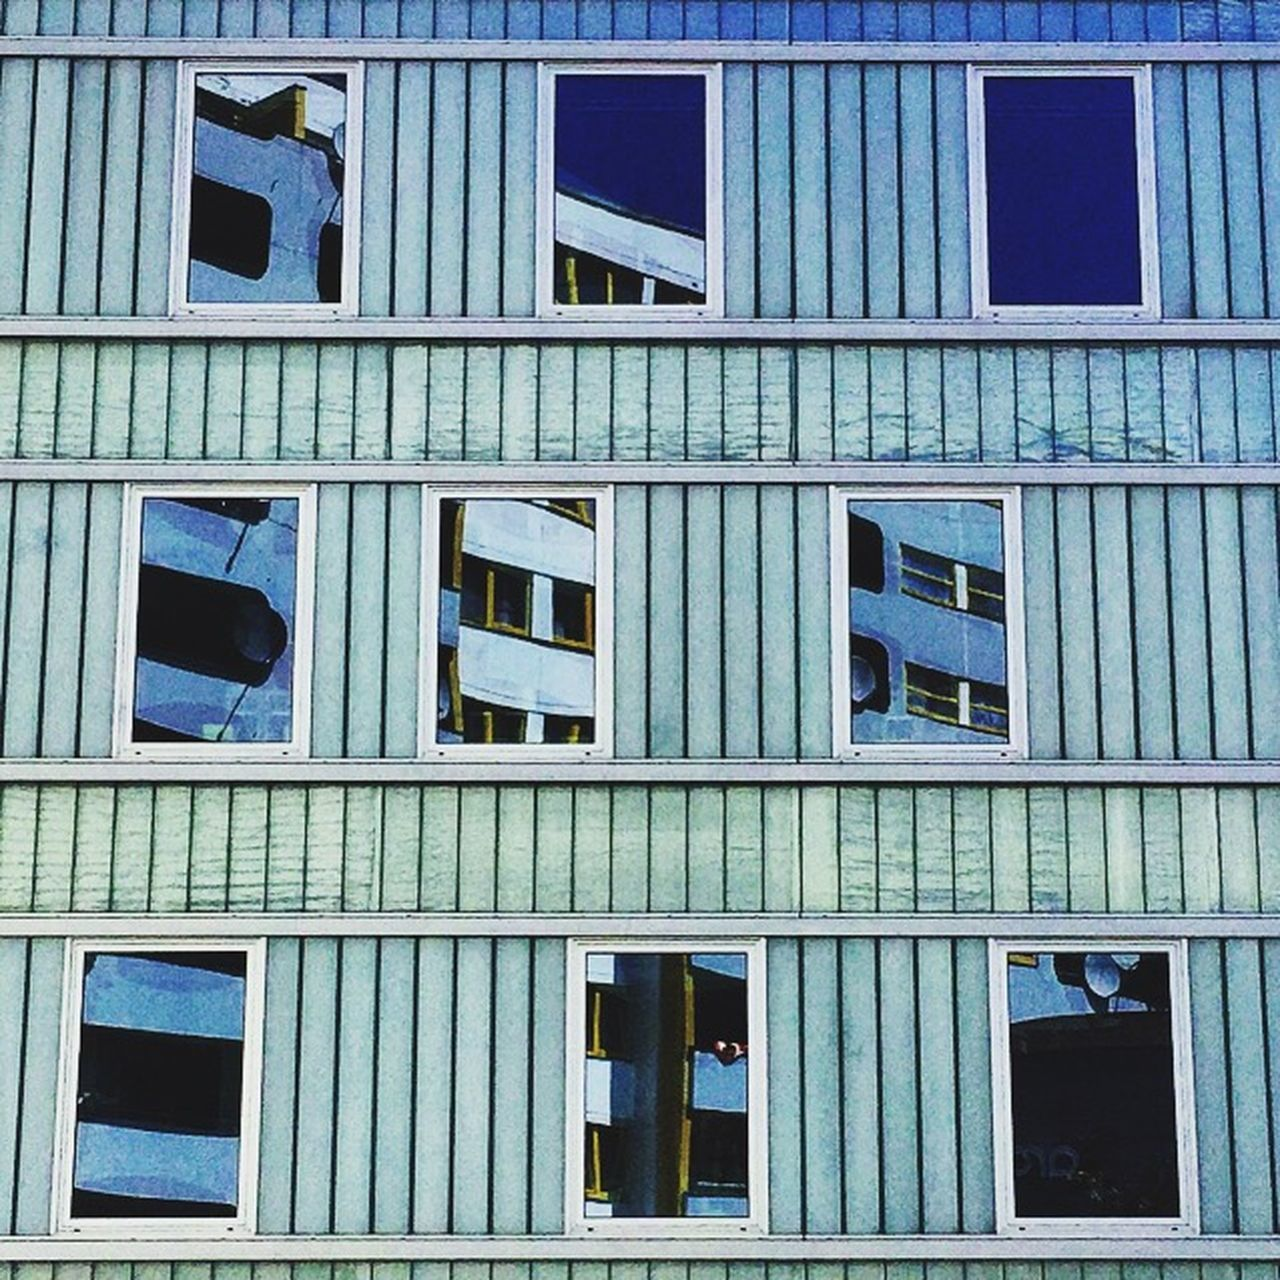 architecture, built structure, window, building exterior, day, outdoors, no people, blue, close-up